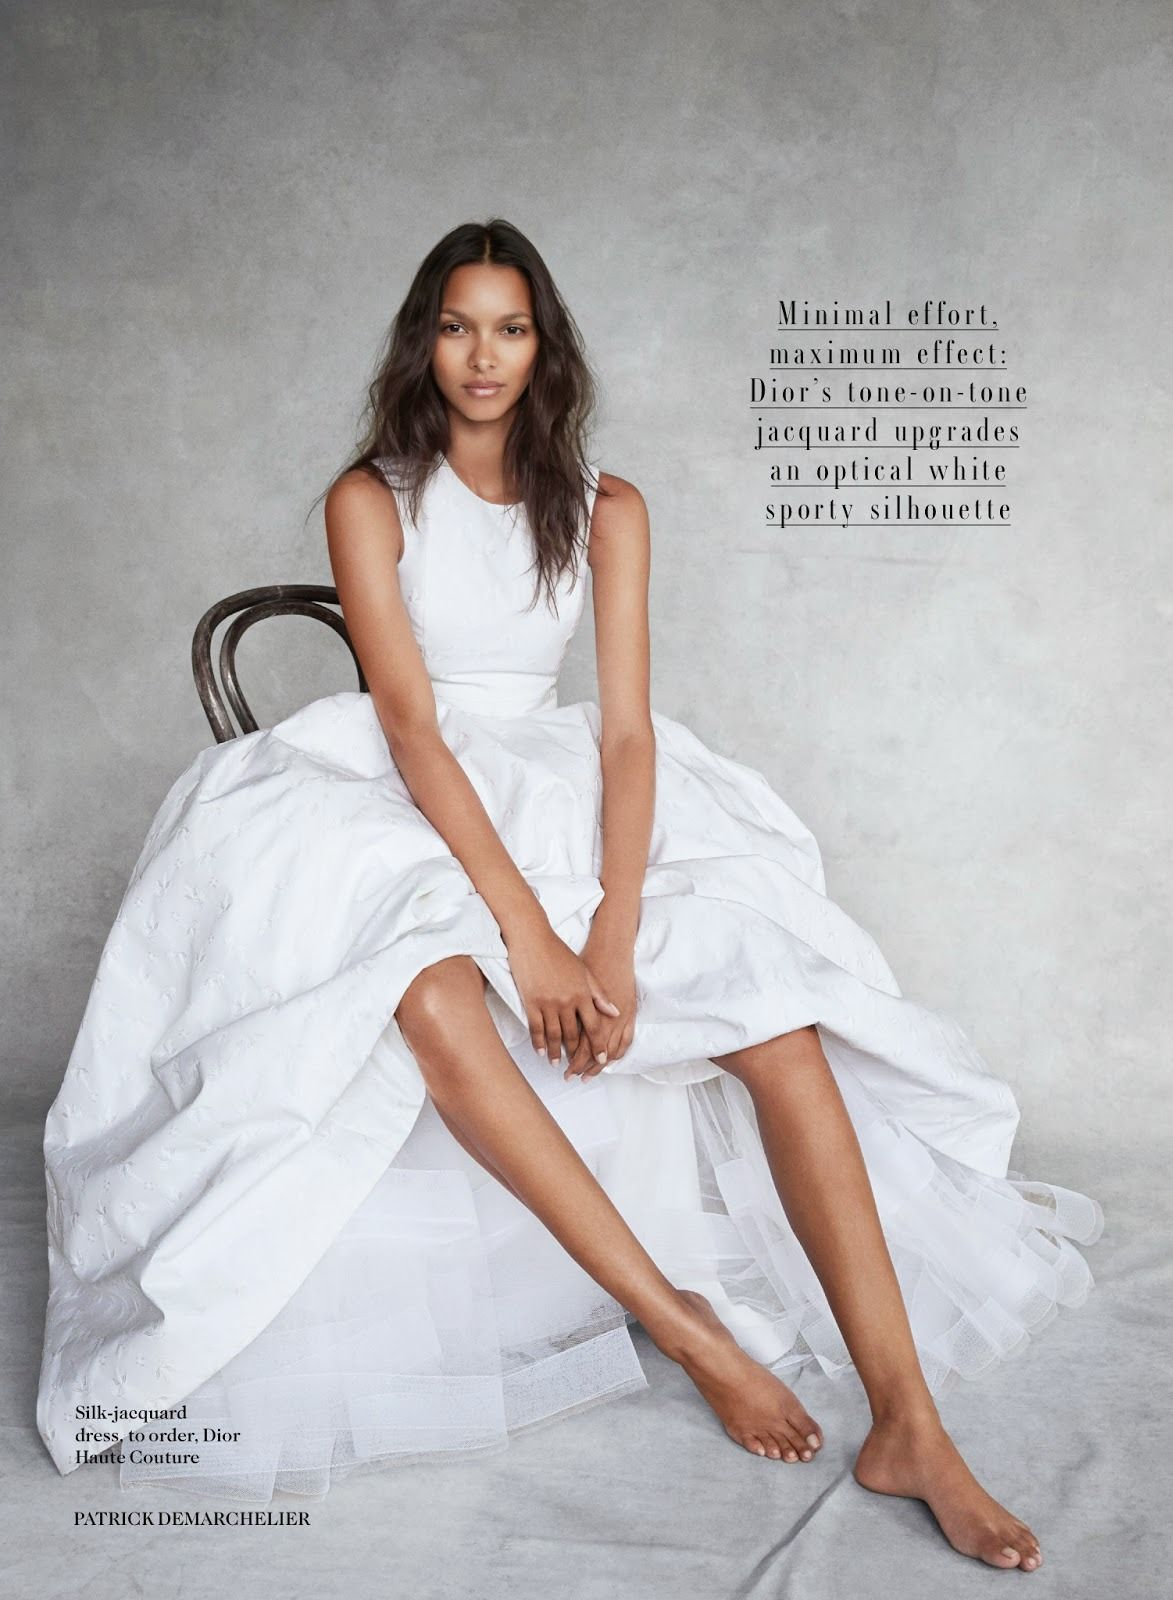 Lais Ribeiro by Patrick Demarchelier in Dior for Vogue UK